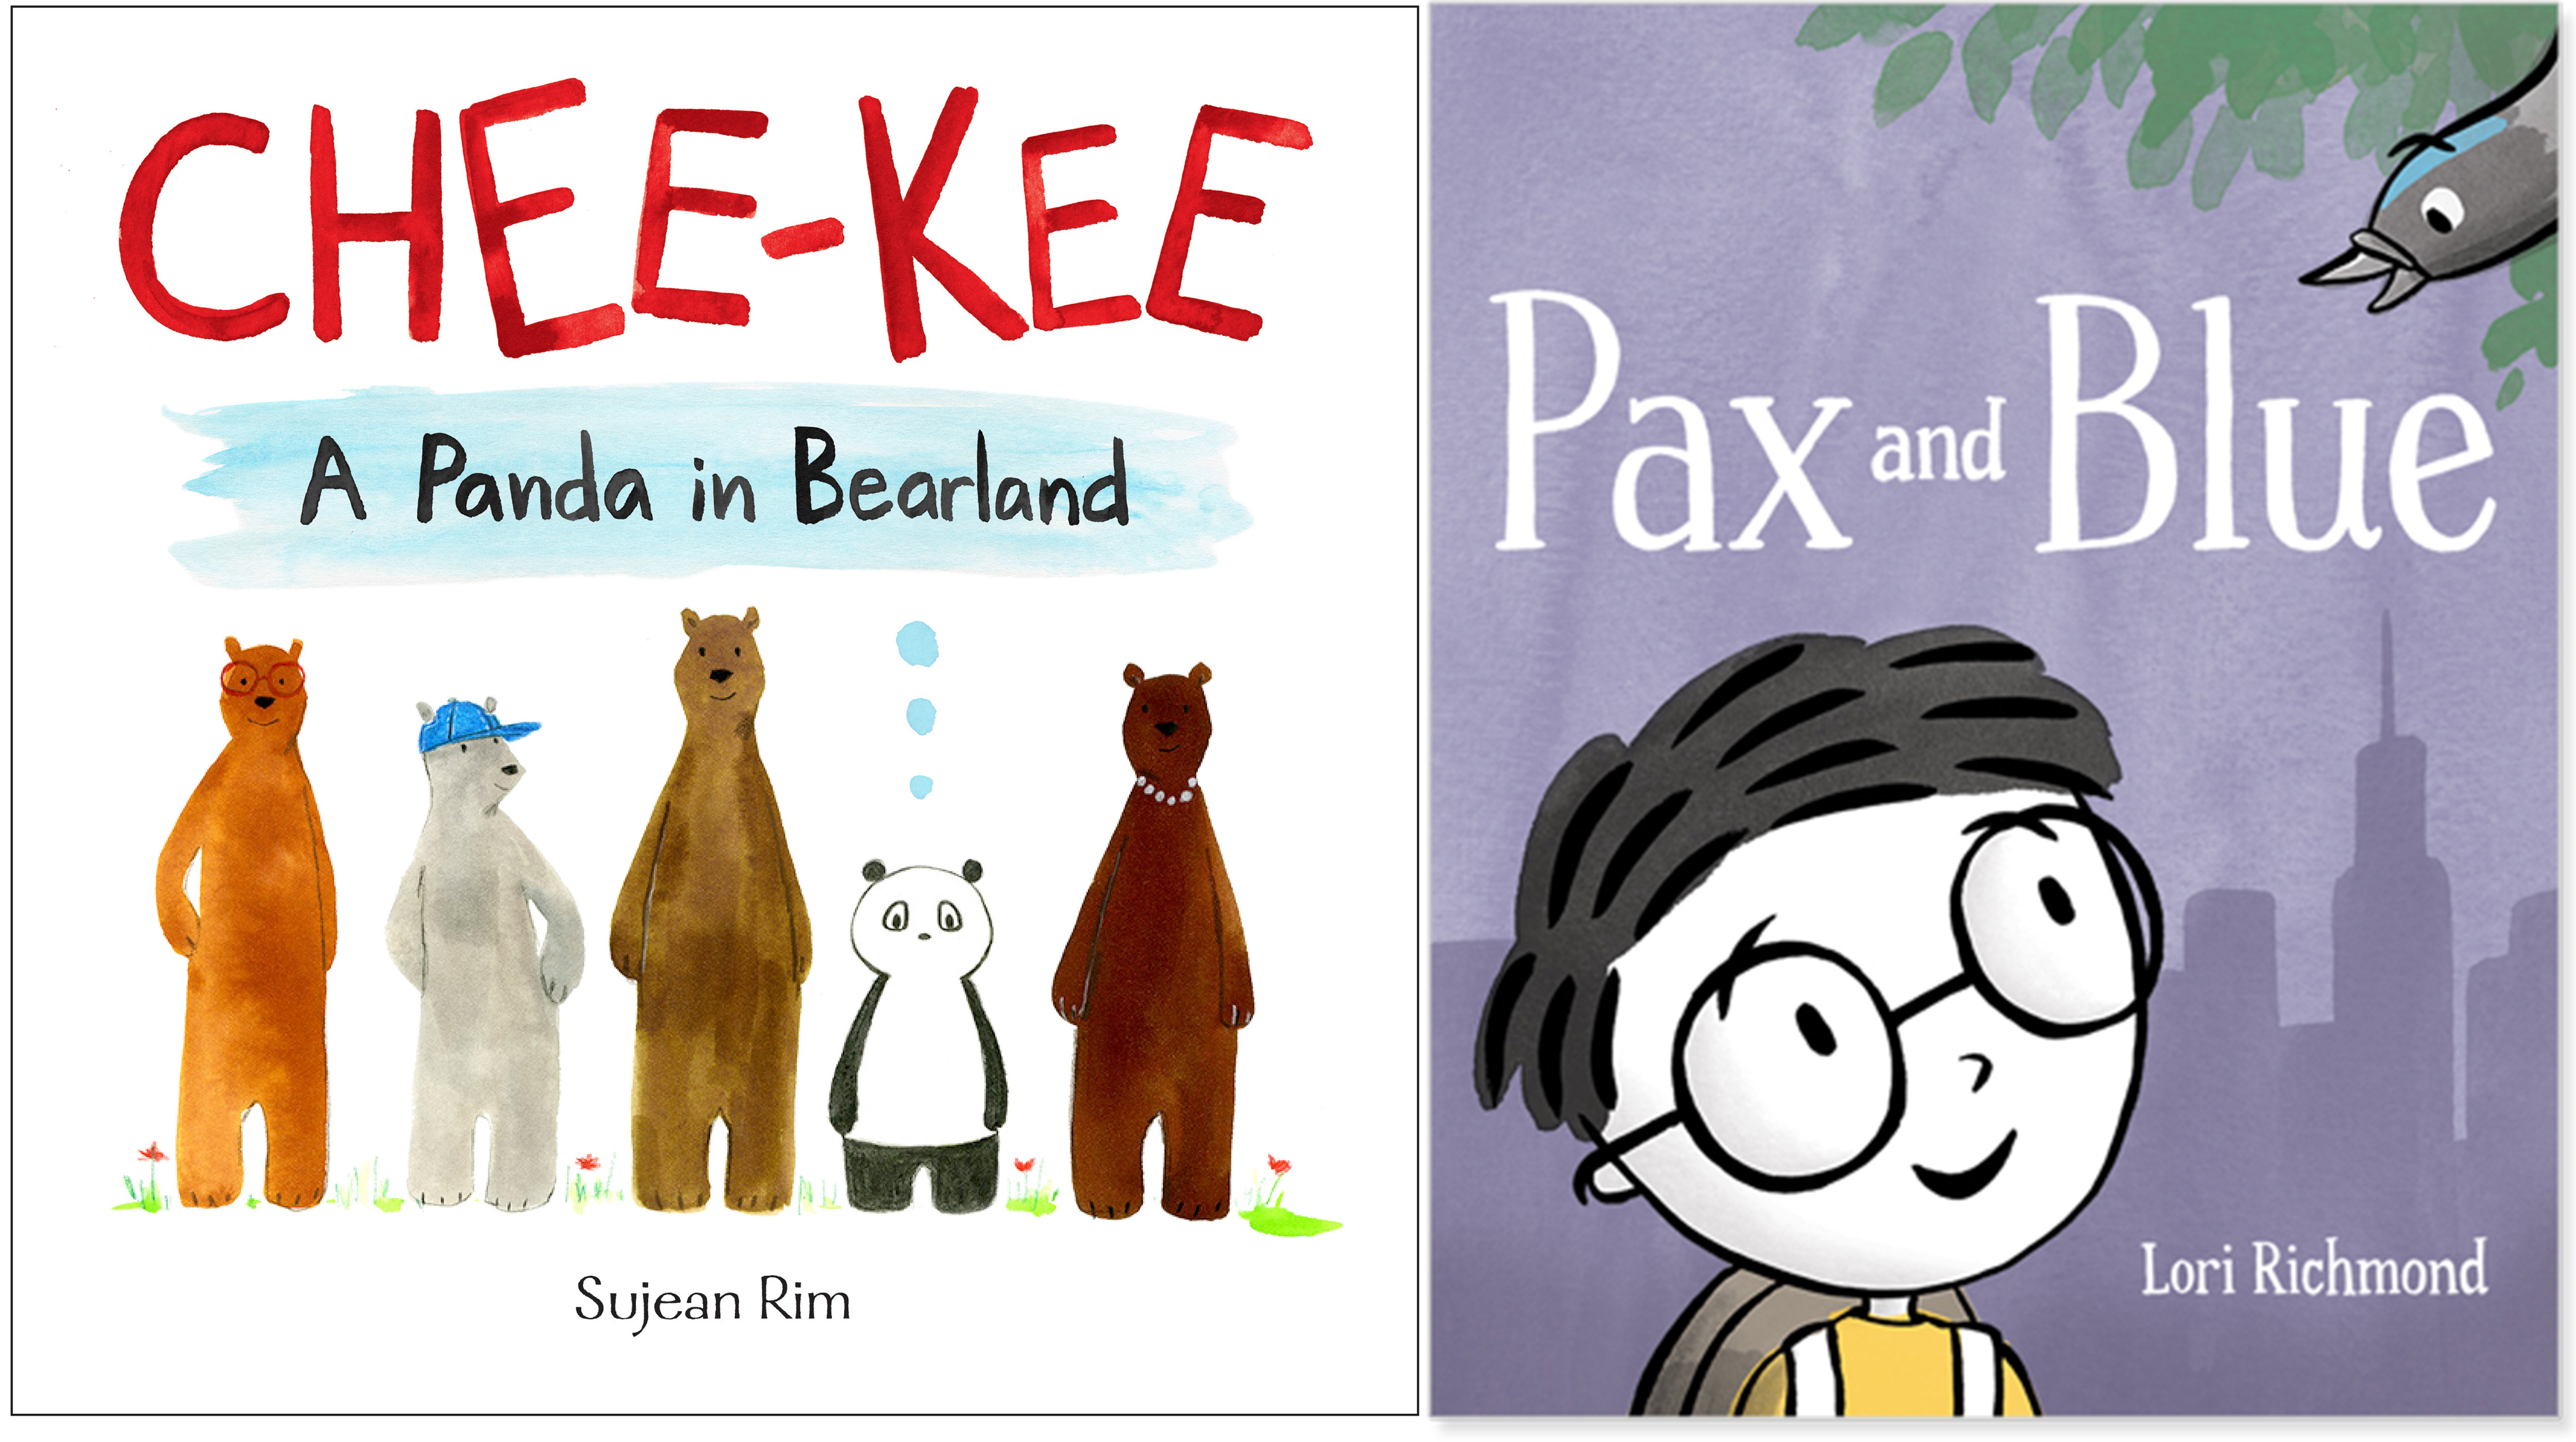 Sunday Story Time with Lori Richmond (Author of Pax and Blue) and Sujean Rim (Author of Chee-Kee)